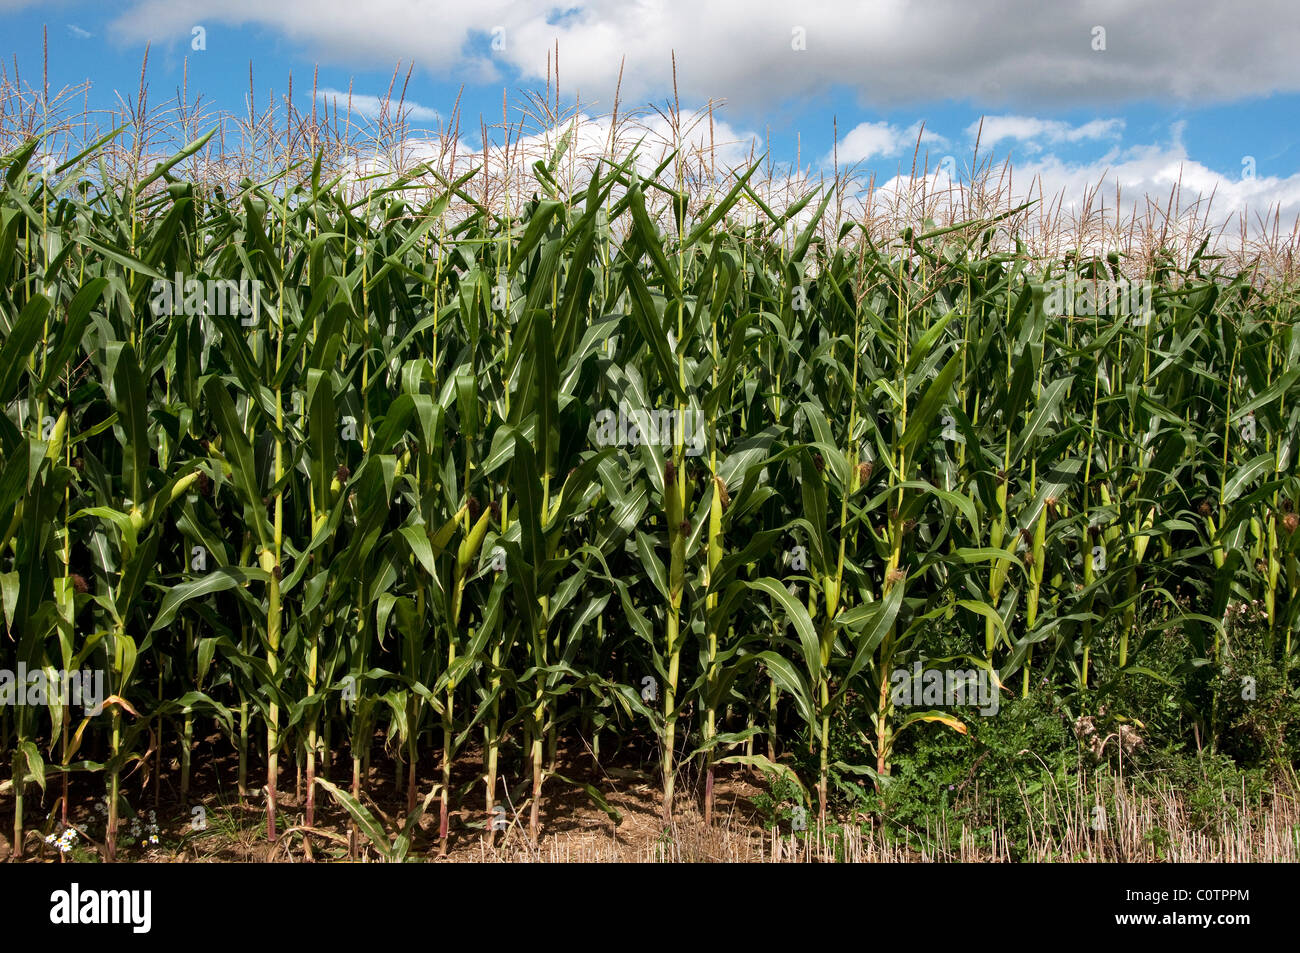 Maize, Corn (Zea mays). Edge of a flowering field. - Stock Image